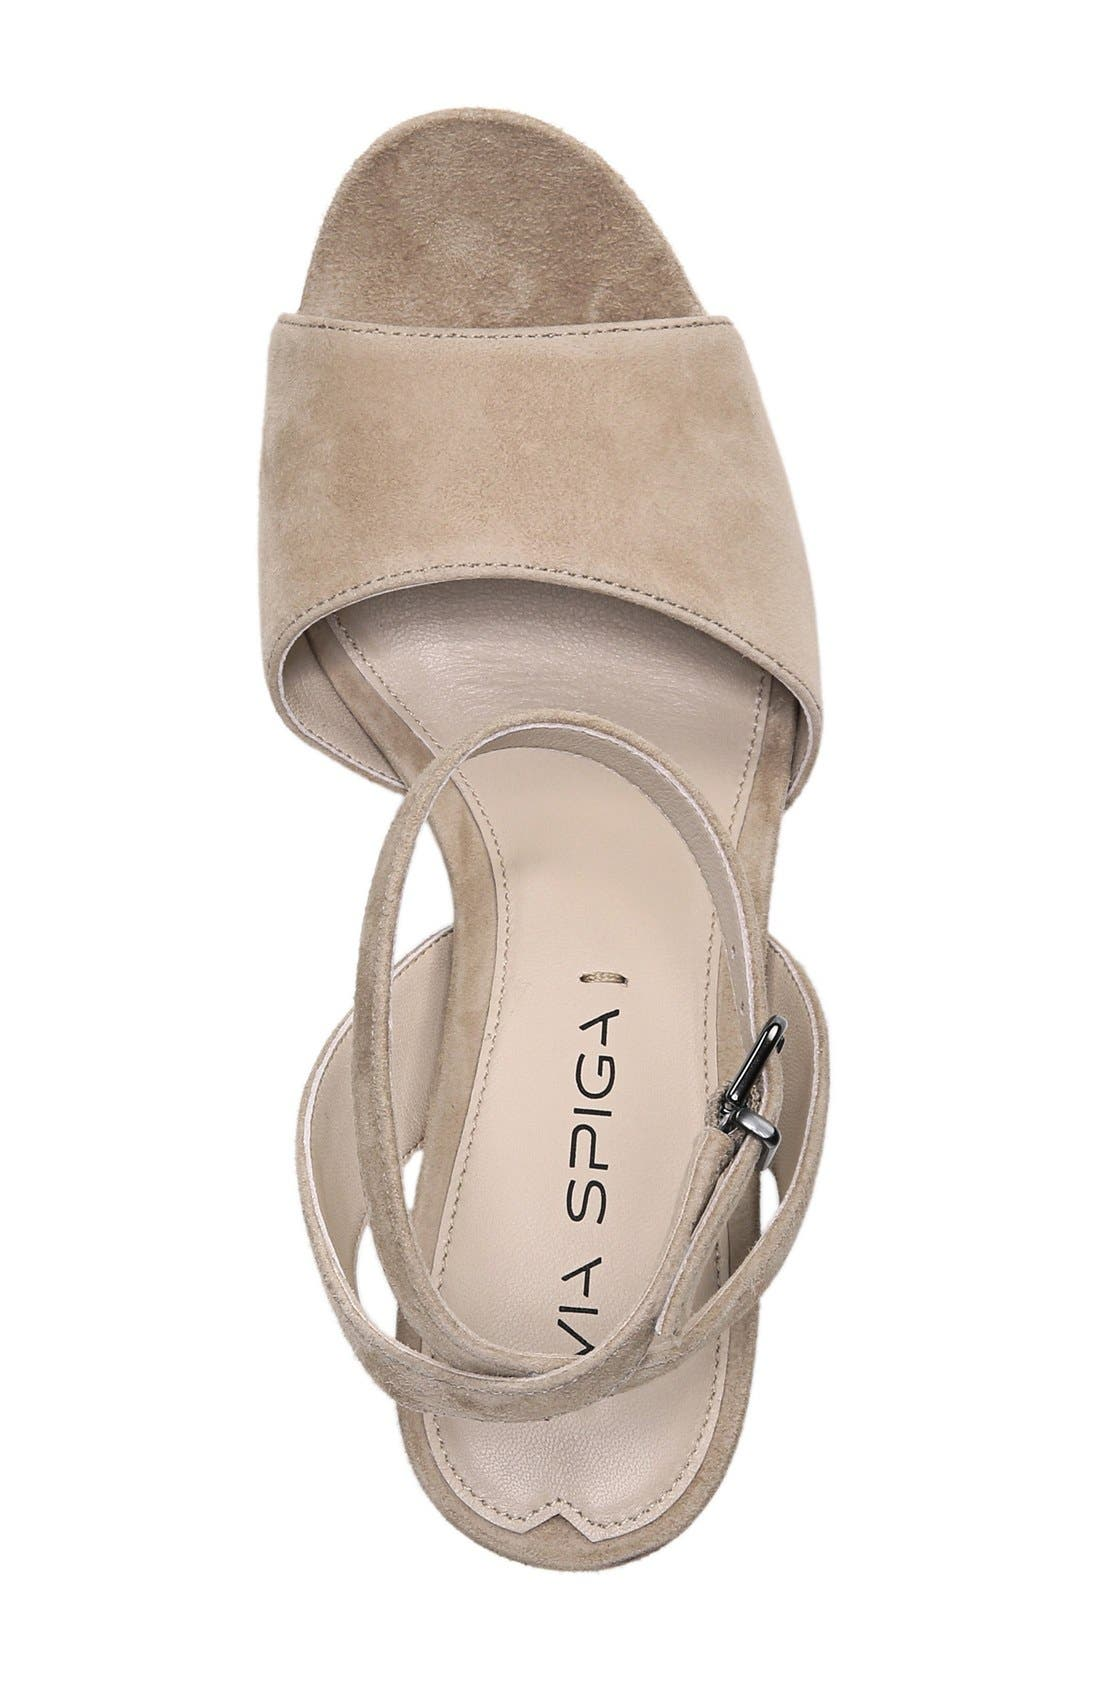 'Piper' Ankle Strap Sandal,                             Alternate thumbnail 3, color,                             Light Camel Suede